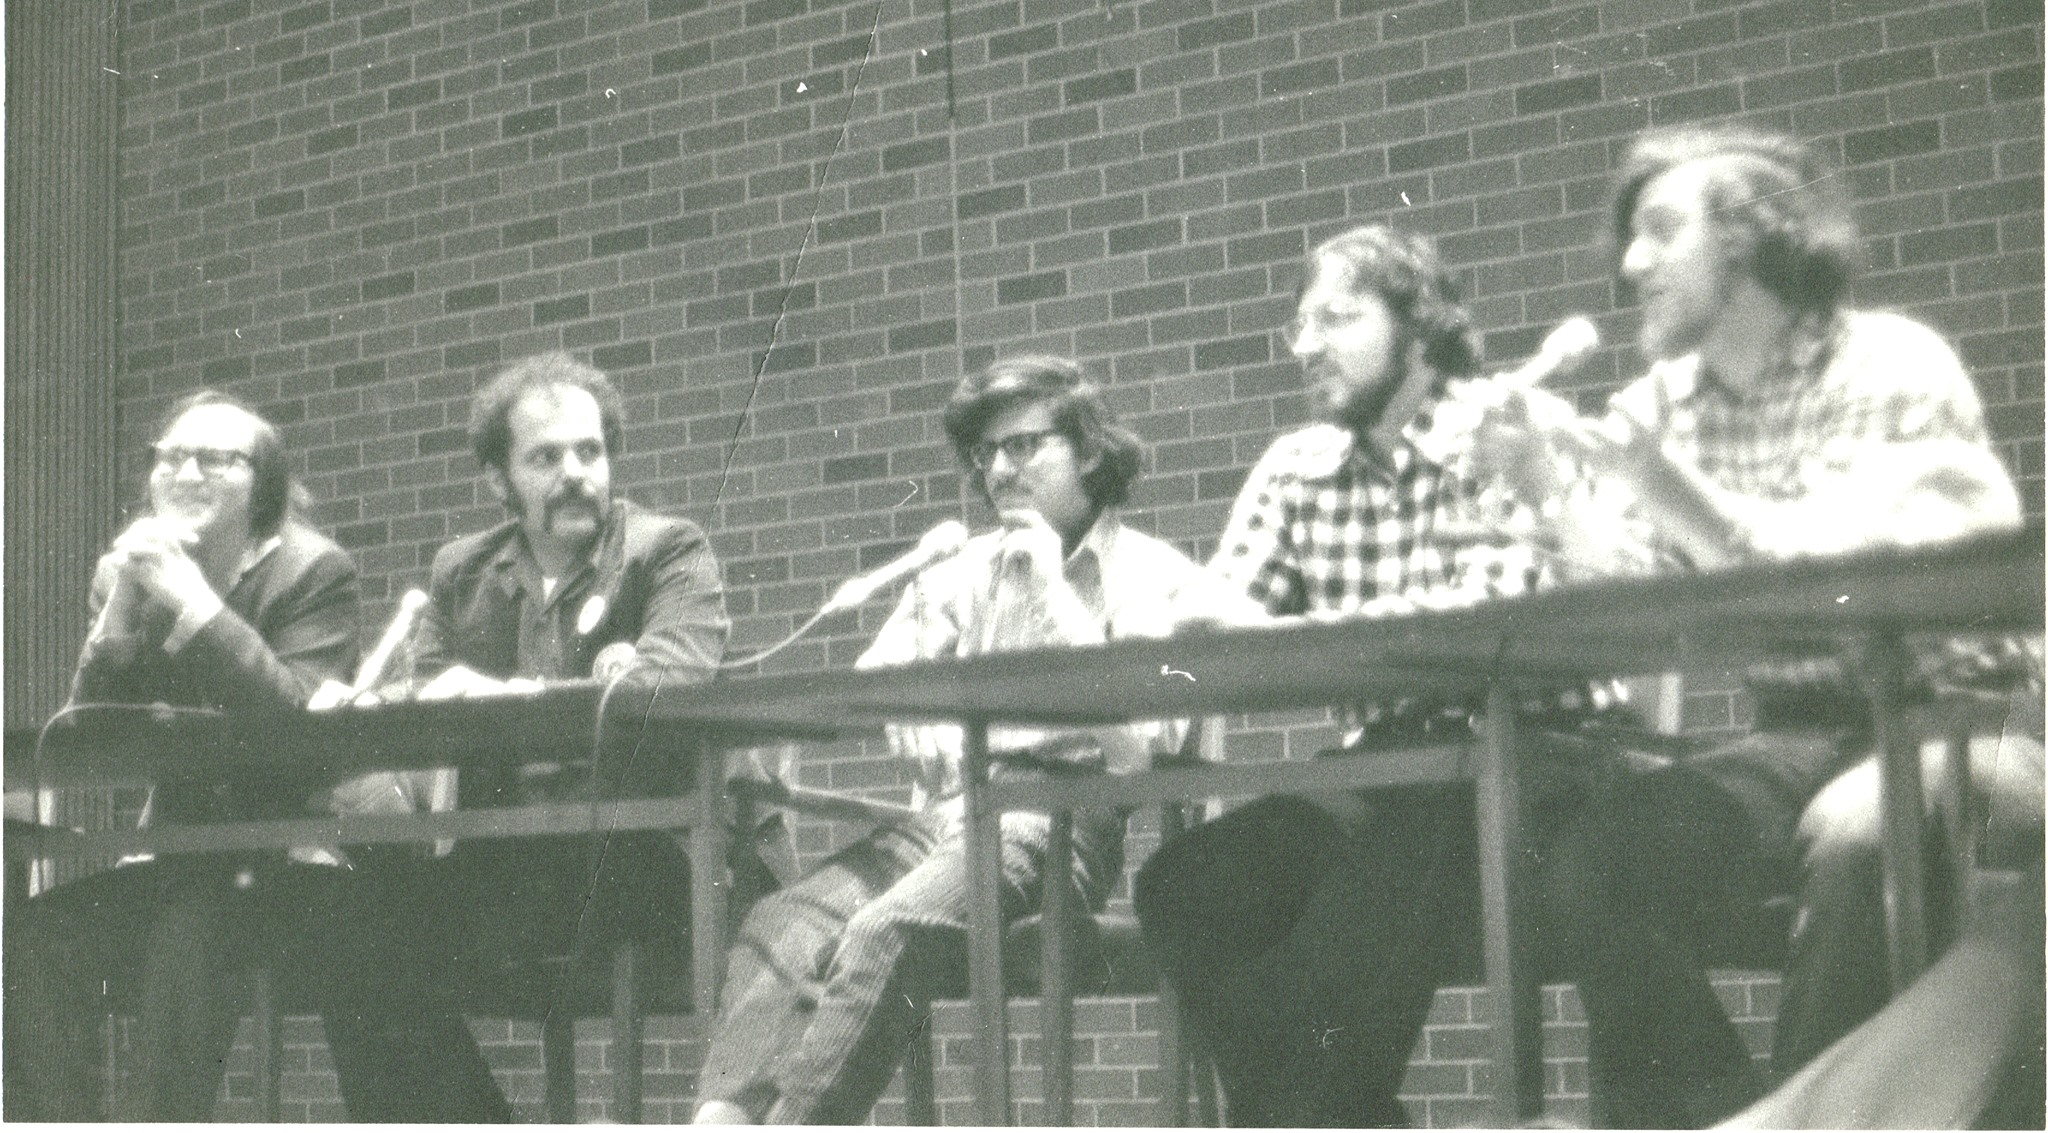 Joe Staton, Nicola Cuti, Paul Levitz, Marv Wolfman, Len Wein at a convention circa 1974.